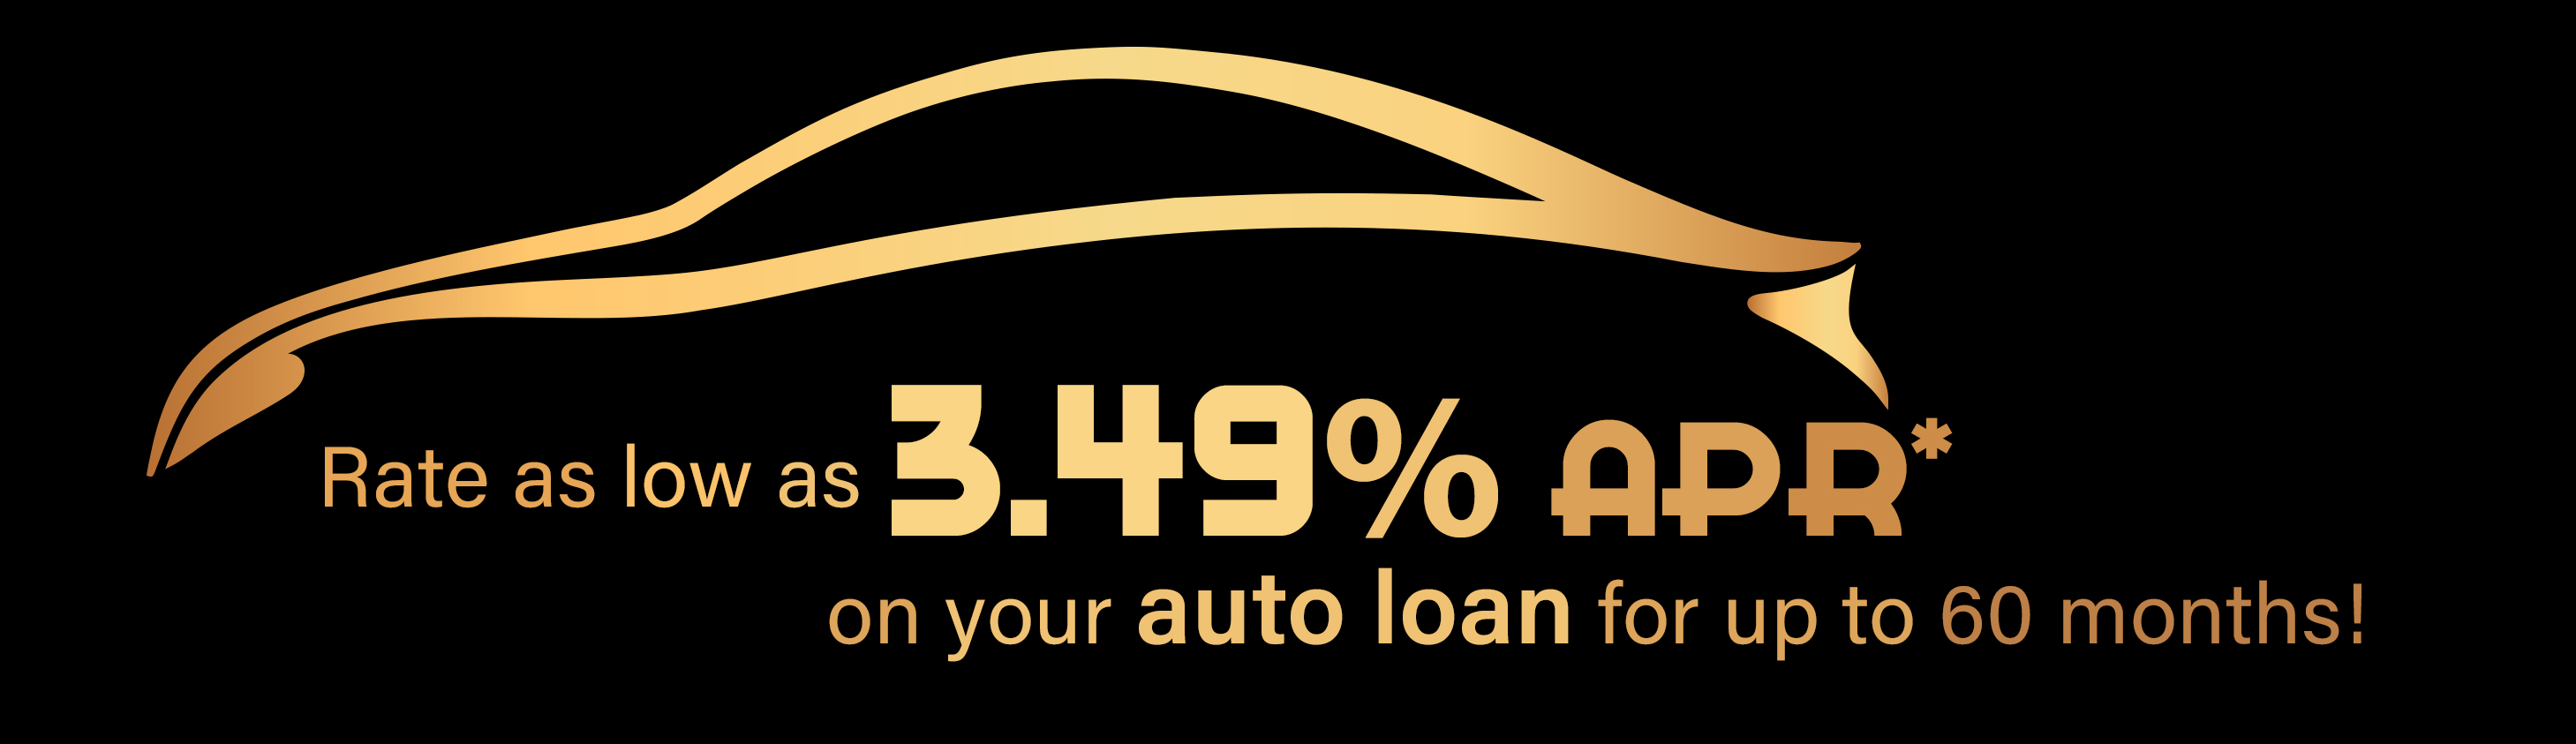 Auto loan rate as low as 3.49% APR*